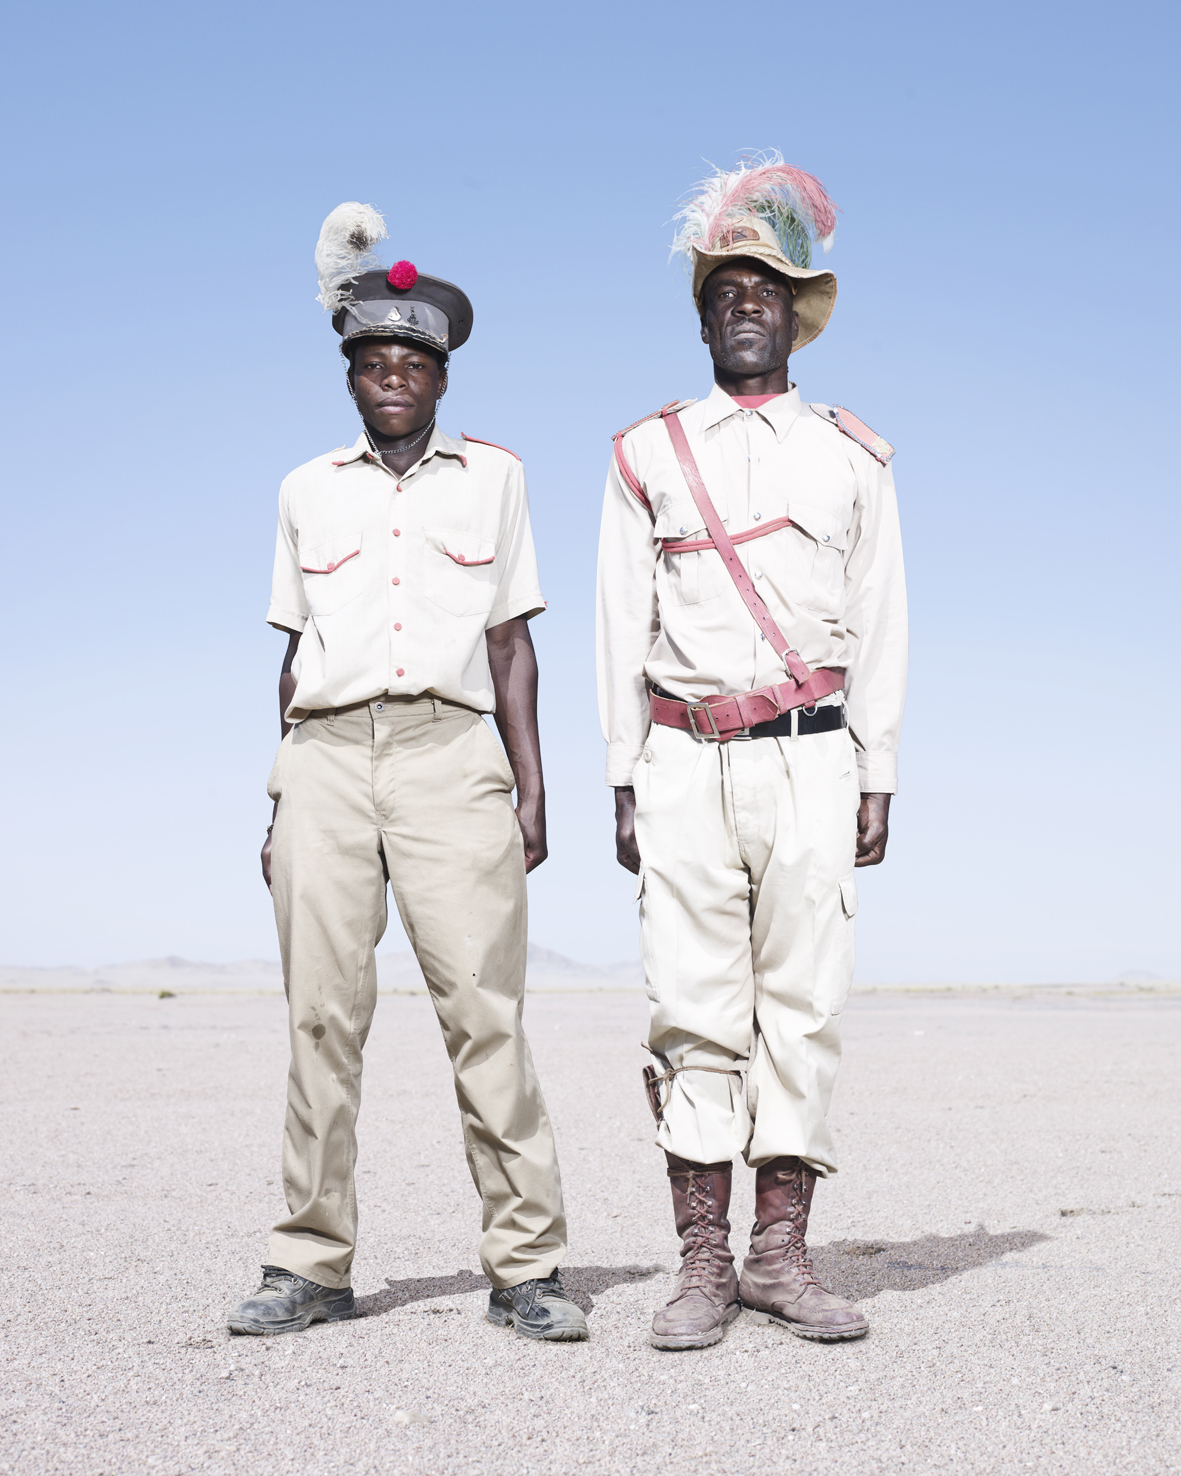 Two Otruppe cavalrymen. Their hats are adorned with colored ostrich feathers.